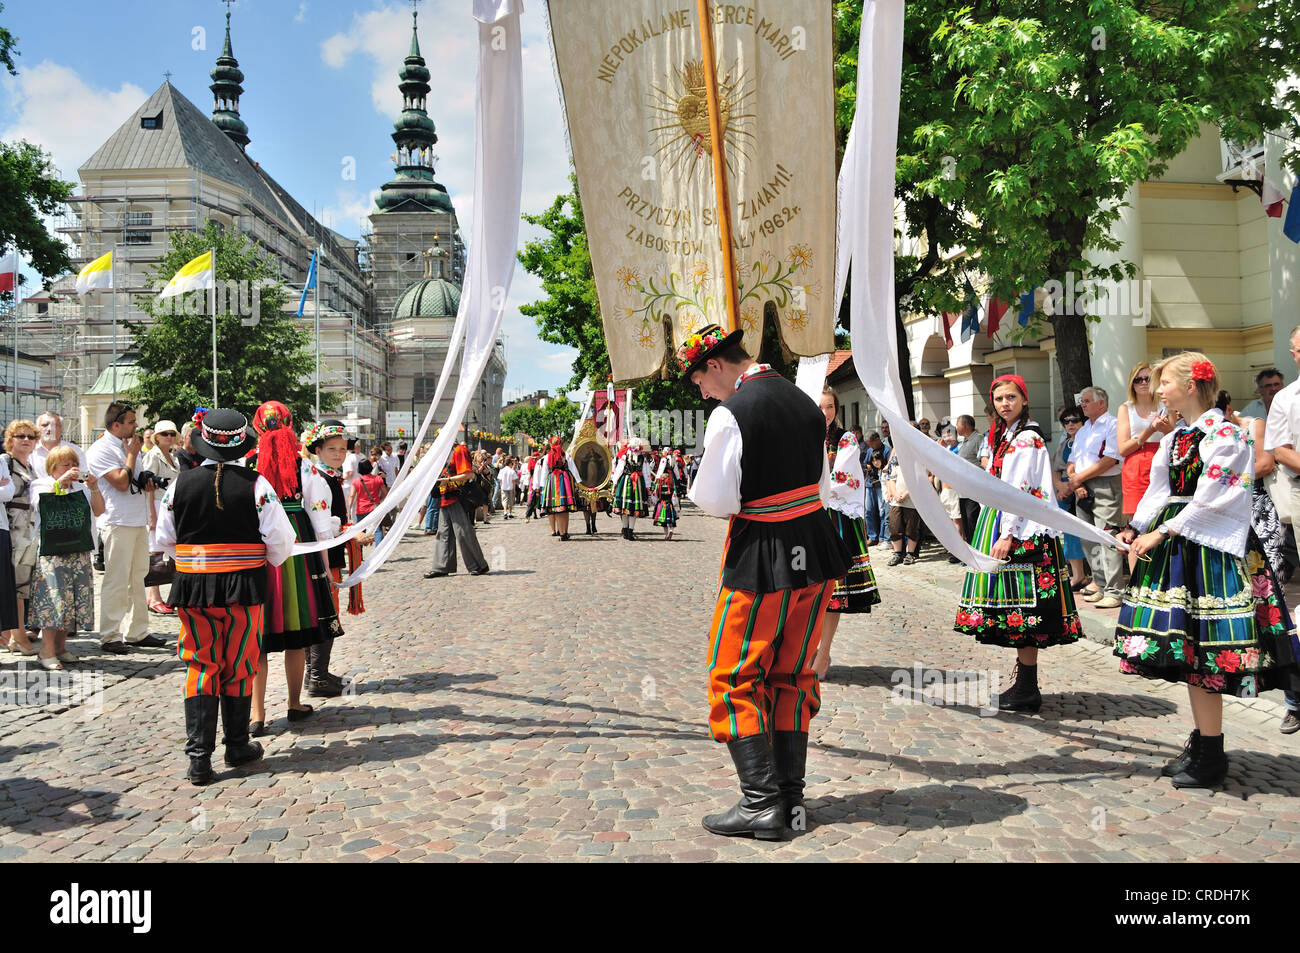 Corpus Christi Day - procession in Lowicz. Stock Photo